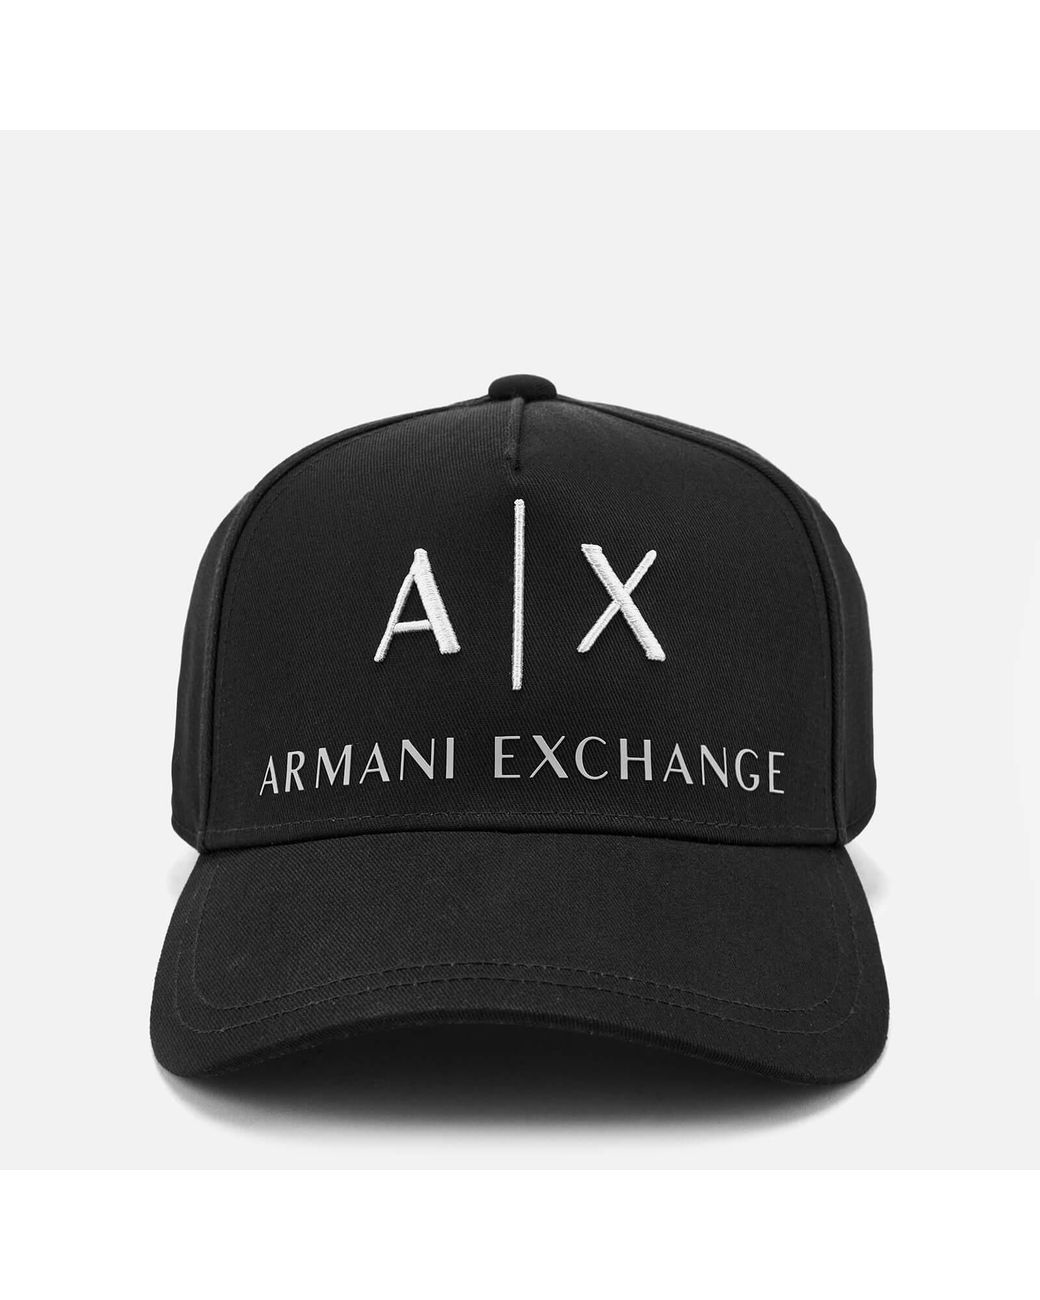 505a21a7465 Lyst - Armani Exchange Logo Cap in Black for Men - Save 39%